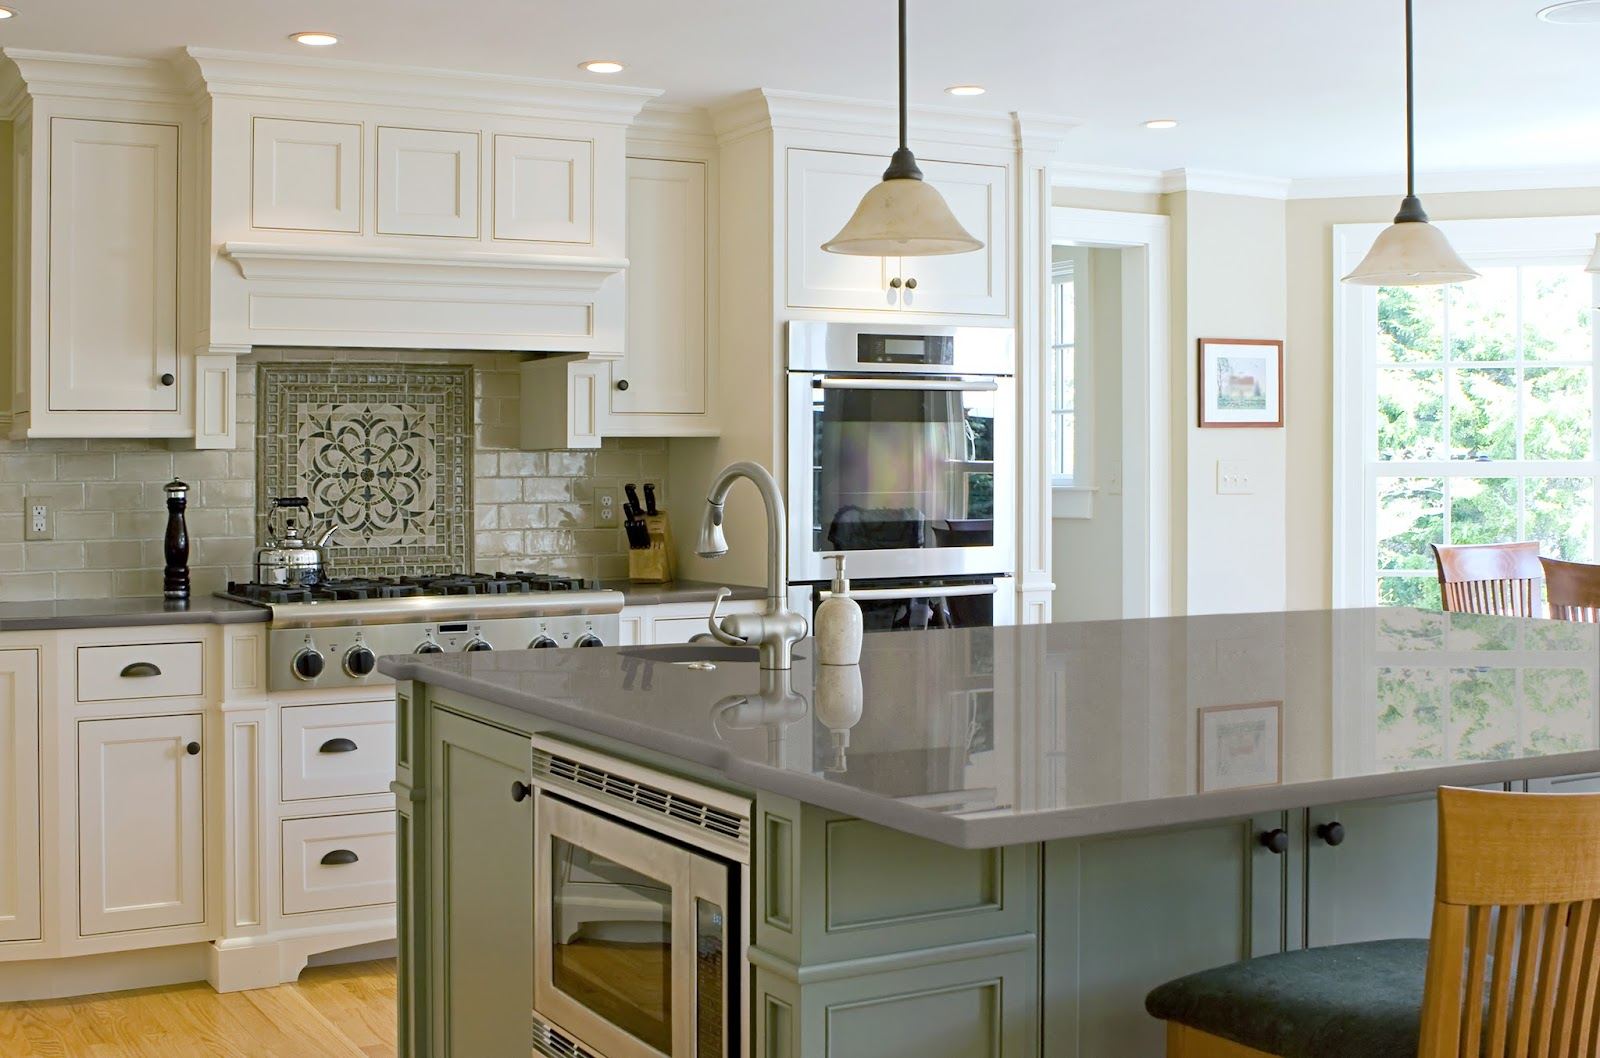 The Innovative, Breakthrough Material Provides Todayu0027s Consumer An  Environmentally Friendly Countertop Surface With Superior Strength,  Durability And ...